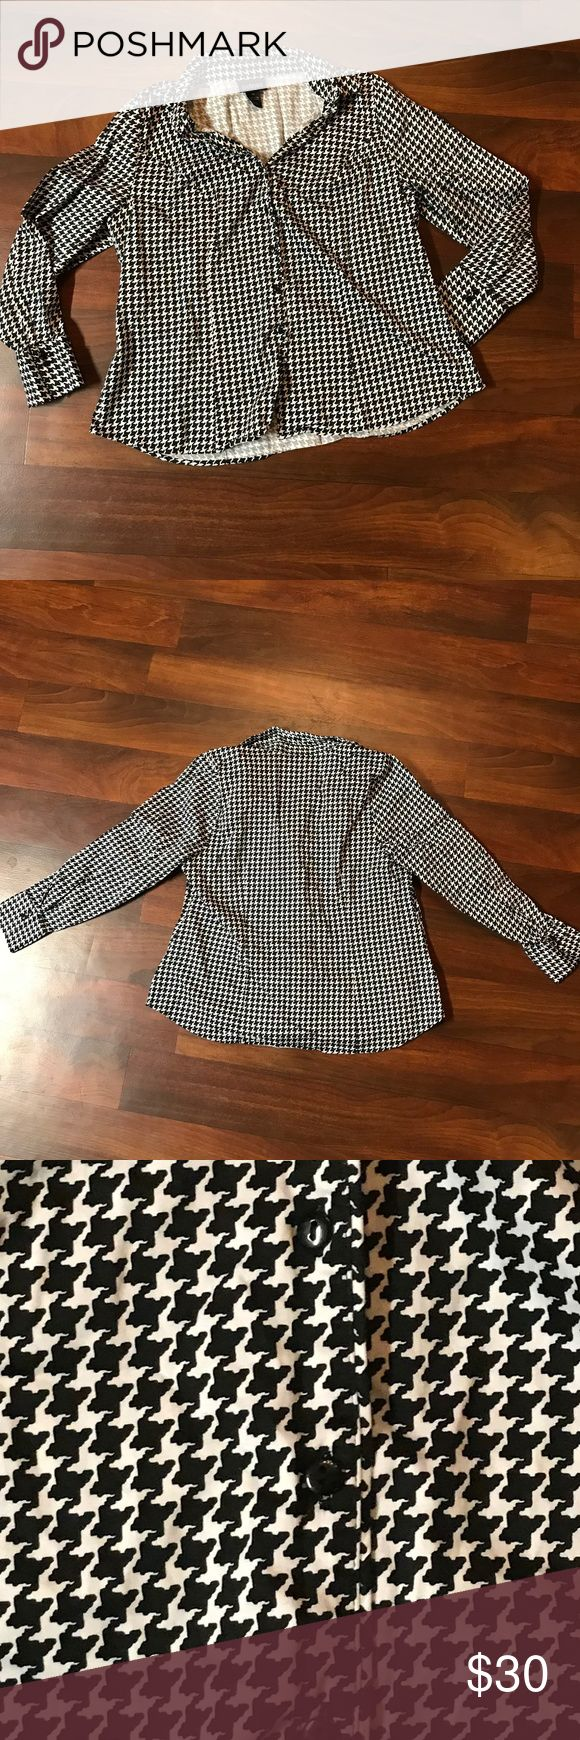 Lane Bryant Plus Size Black White Houndstooth Top Lane Bryant Plus Size Black White Houndstooth Dress Shirt  Black and white houndstooth button up dress long sleeve shirt Size 18 Brand Lane Bryant Cotton Blend Fabric  Measurements Length: 25 inches Chest: 22 1/2 inches laying flat underarm to underarm  * Excellent condition with no sign of wear, tear, or stains. * Smoke Free Home * Pet Free Home * Daily Shipper * Save with bundle discount! * Open to reasonable offers.  010418 Lane Bryant…